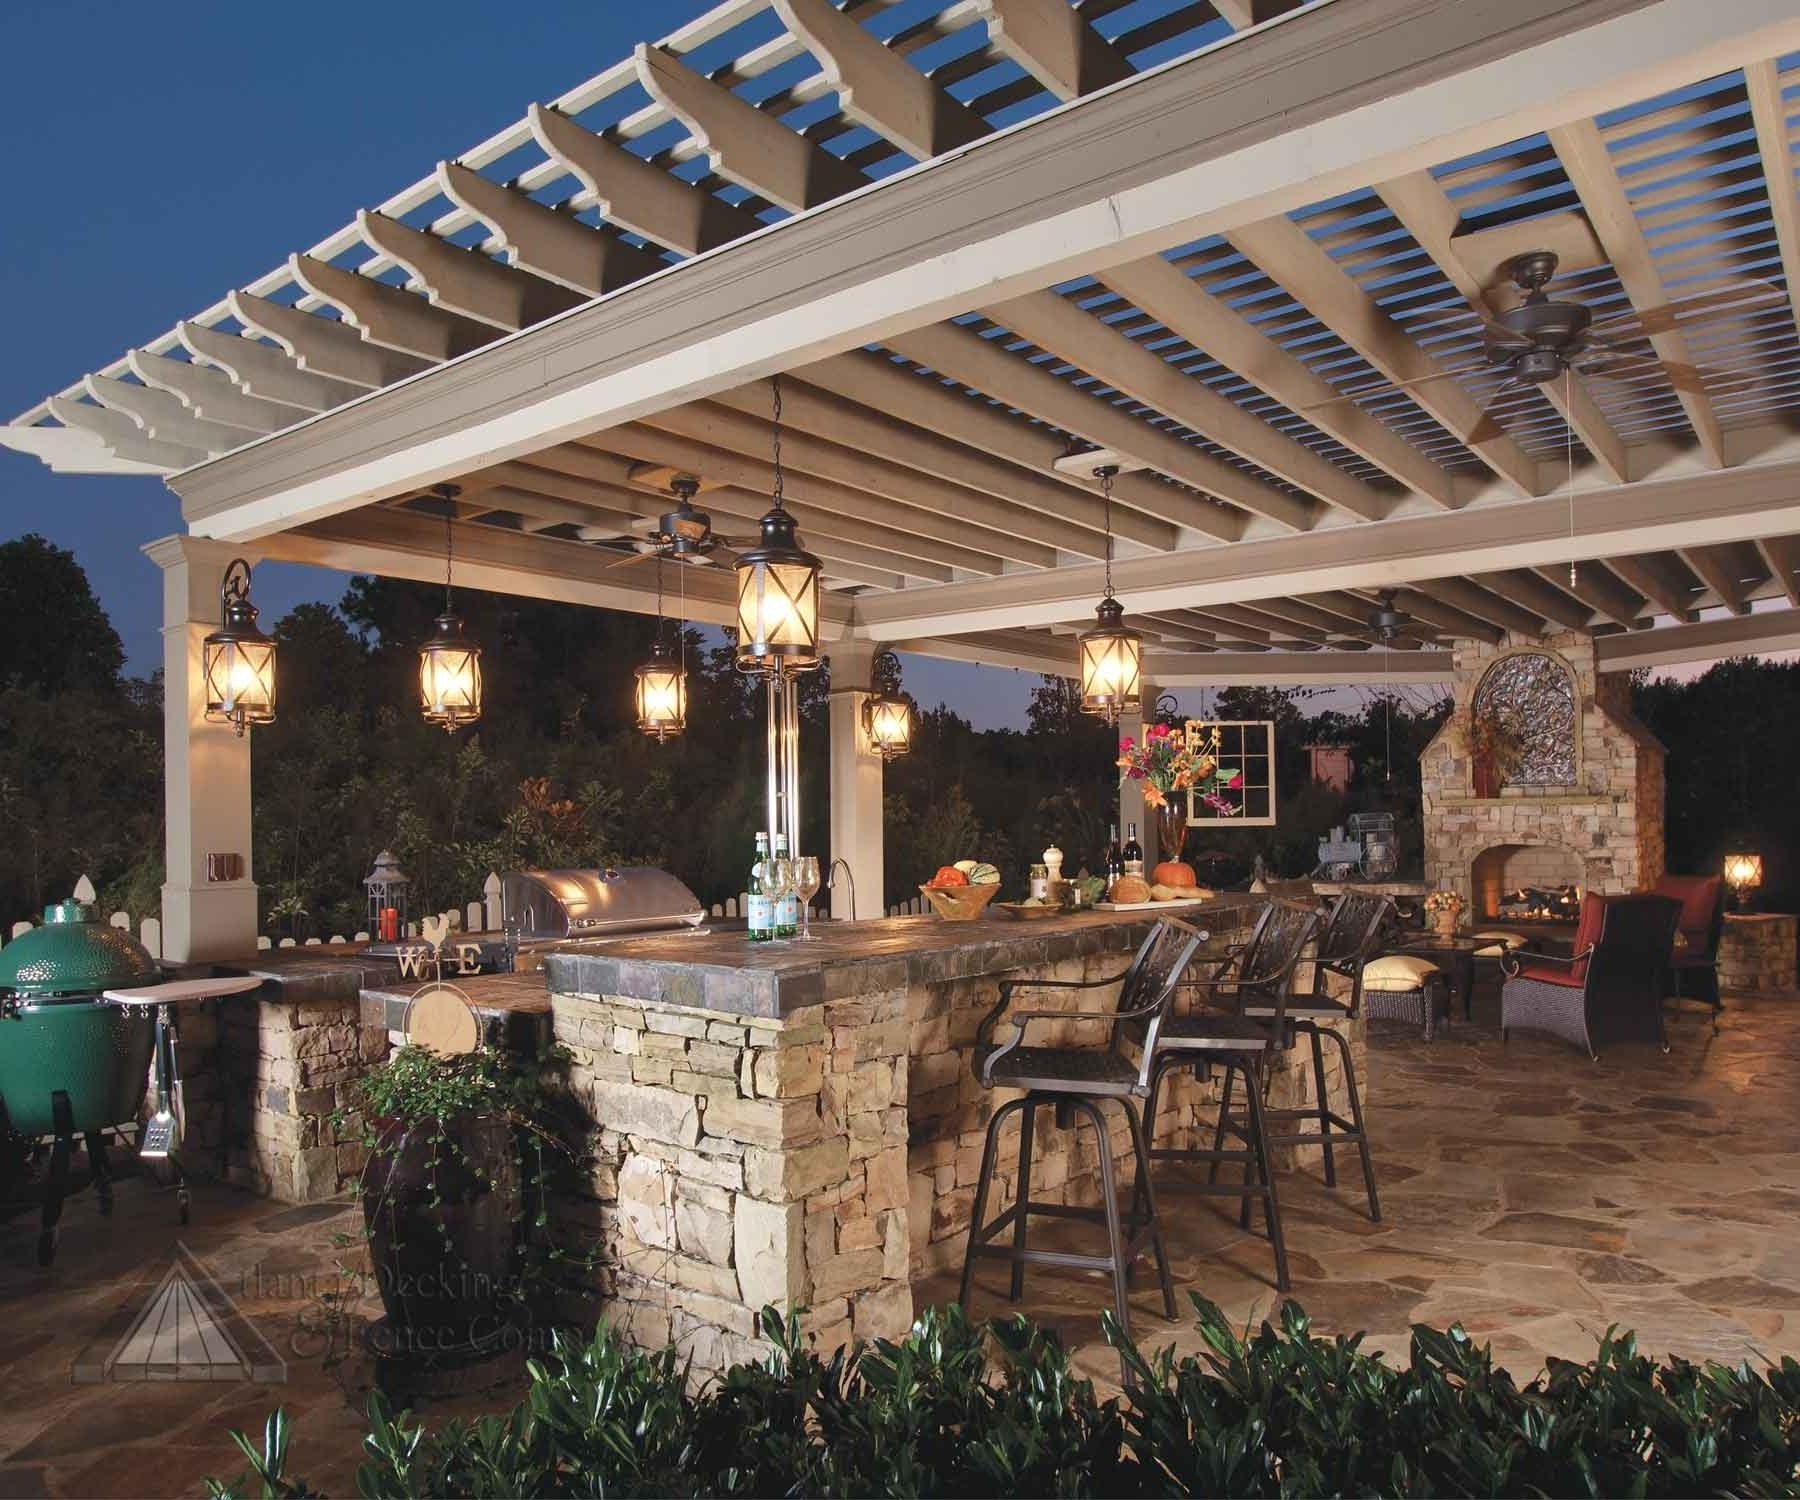 2018 Outdoor Hanging Lighting Fixtures Intended For Gorgeous Outdoor Kitchen Lighting Fixtures On House Design Ideas (View 1 of 20)